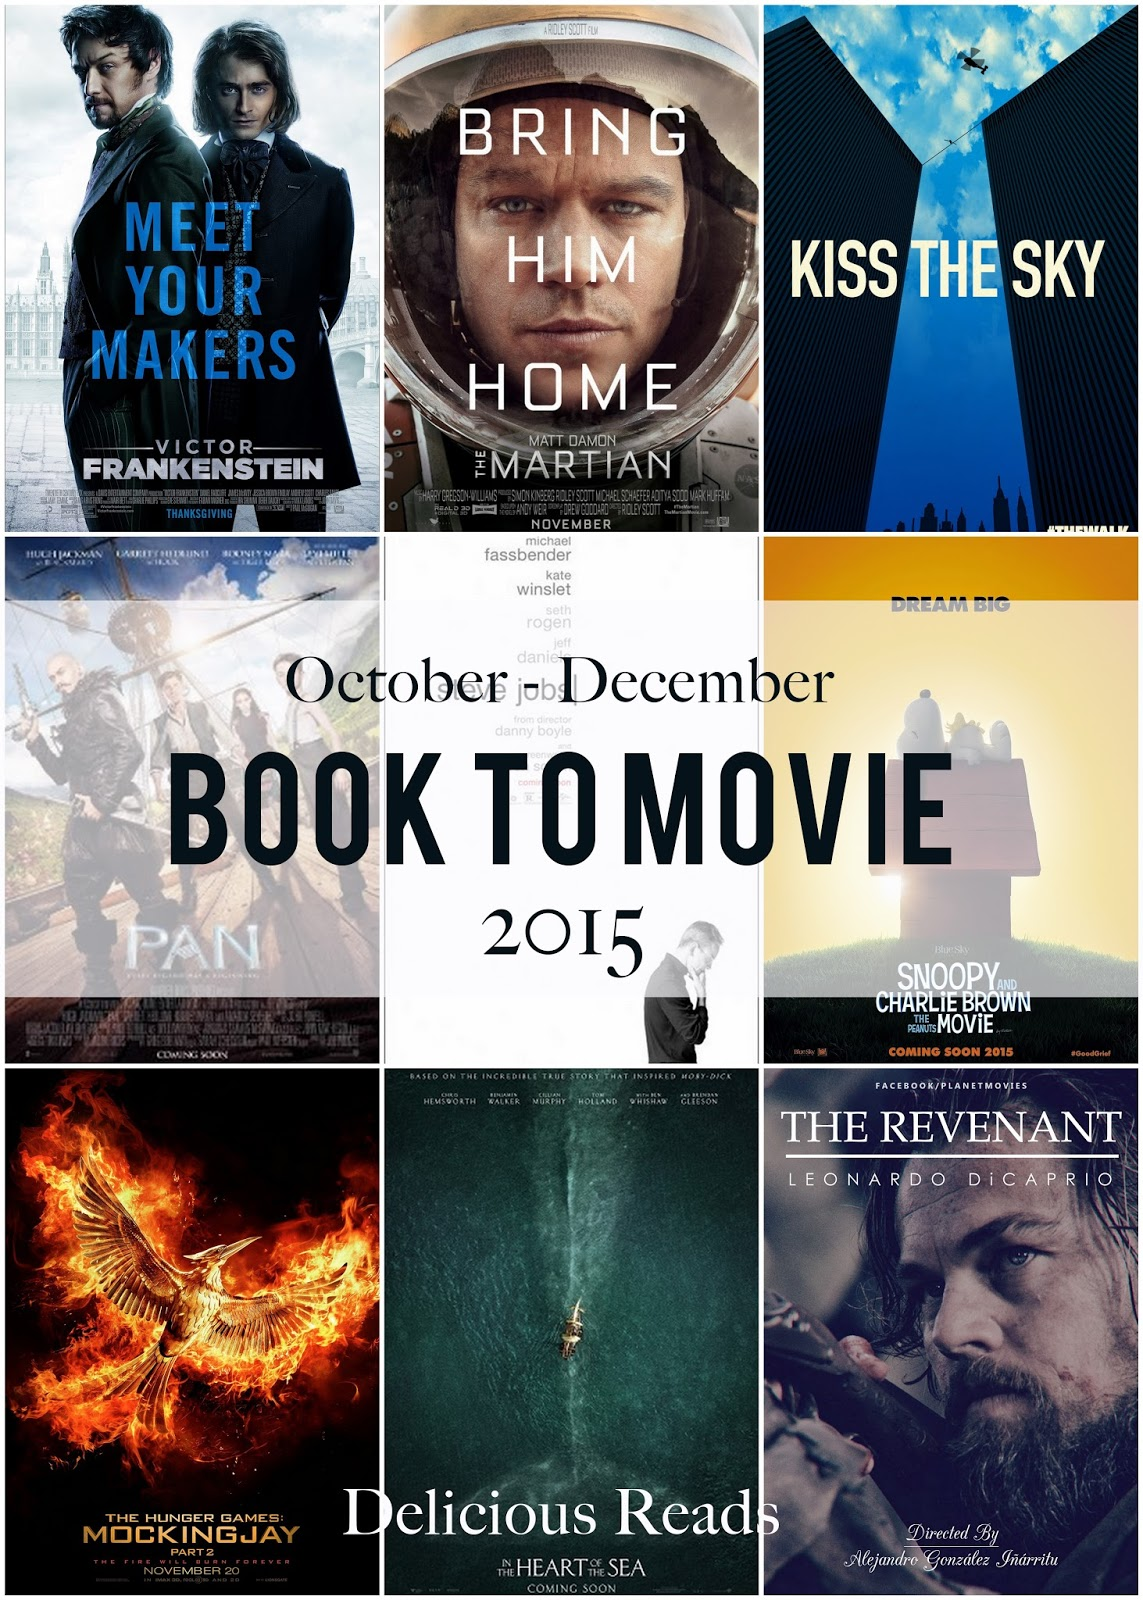 Delicious Reads: 9 Books you Need to Read Before Seeing their Movie